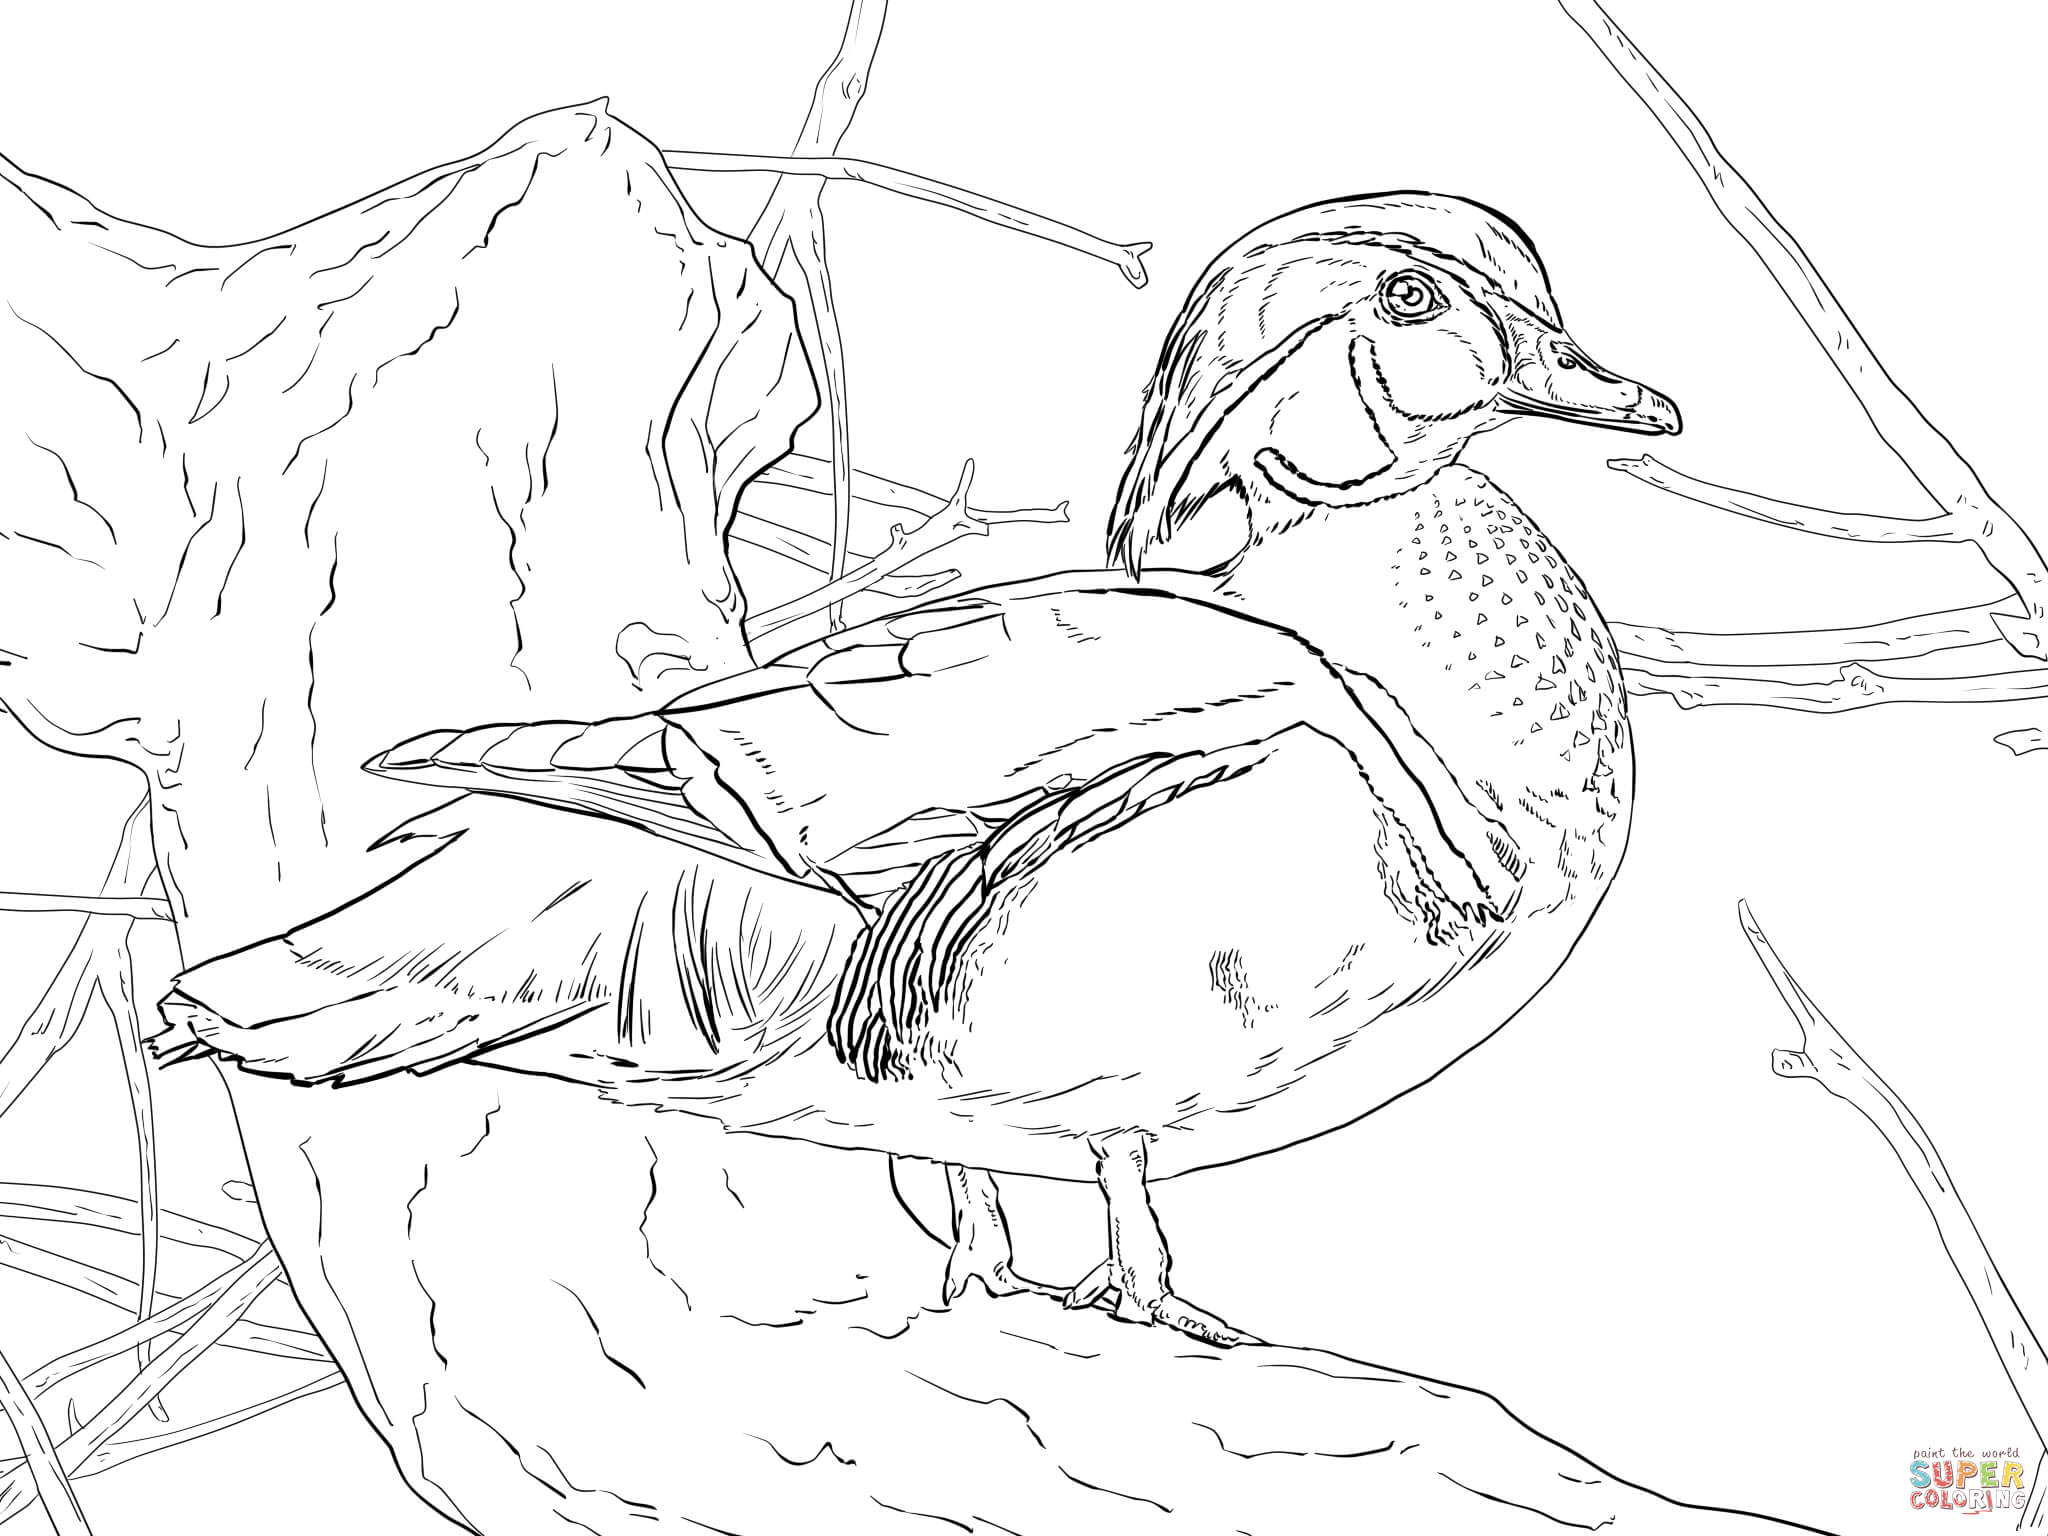 duck duck goose coloring pages daffy duck on vacation to sno village coloring pages netart duck coloring goose pages duck